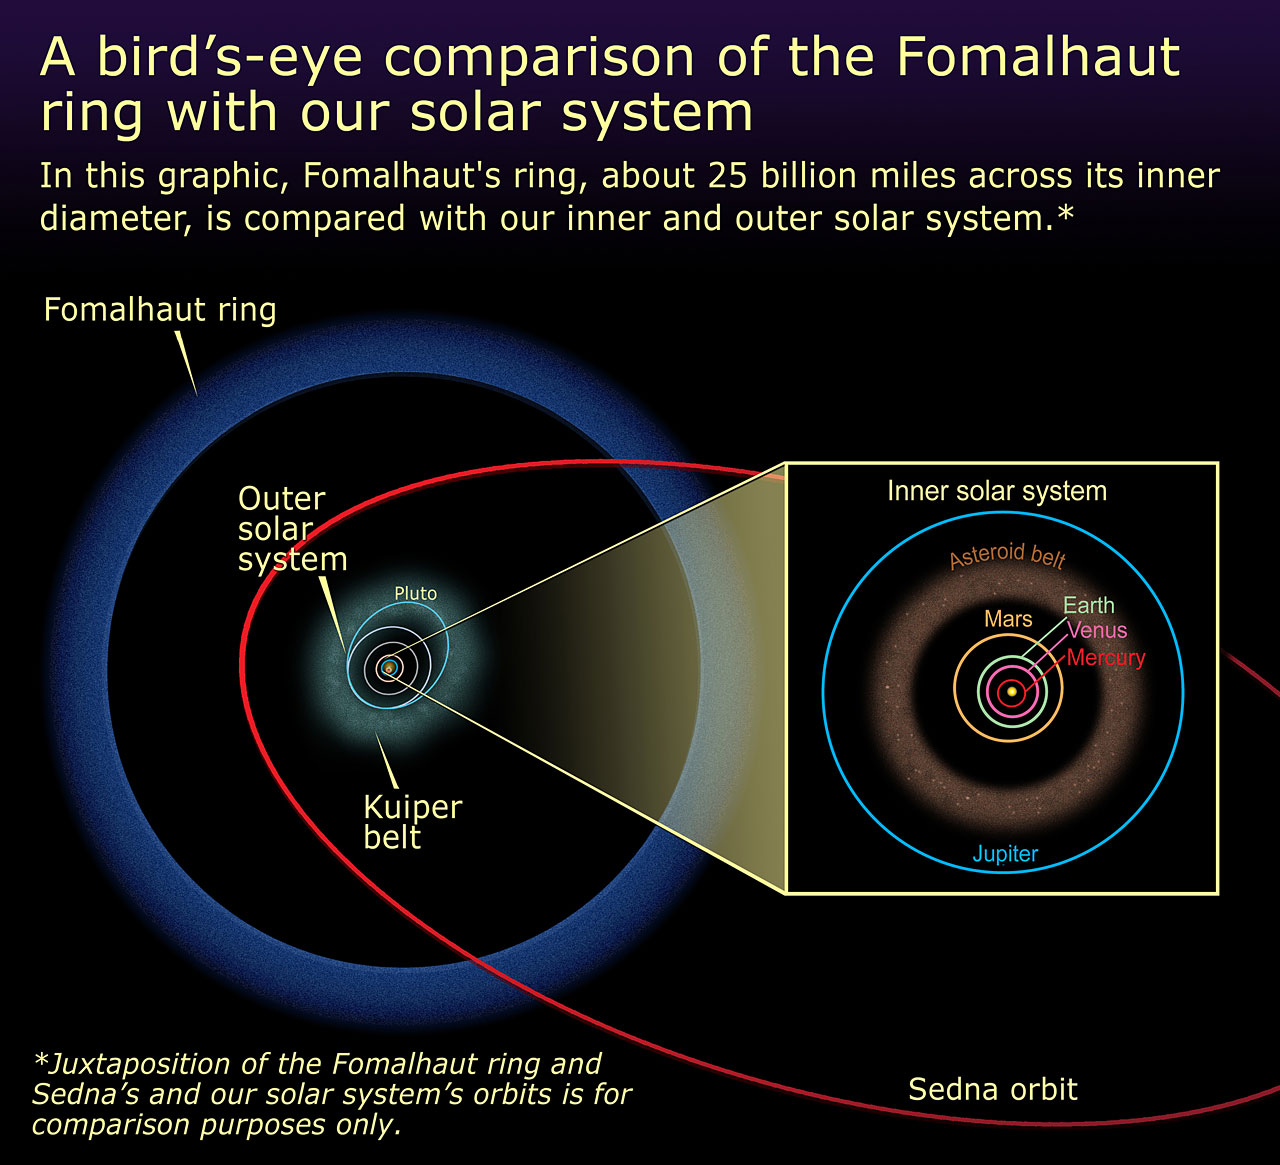 solar system models comparisons - photo #33